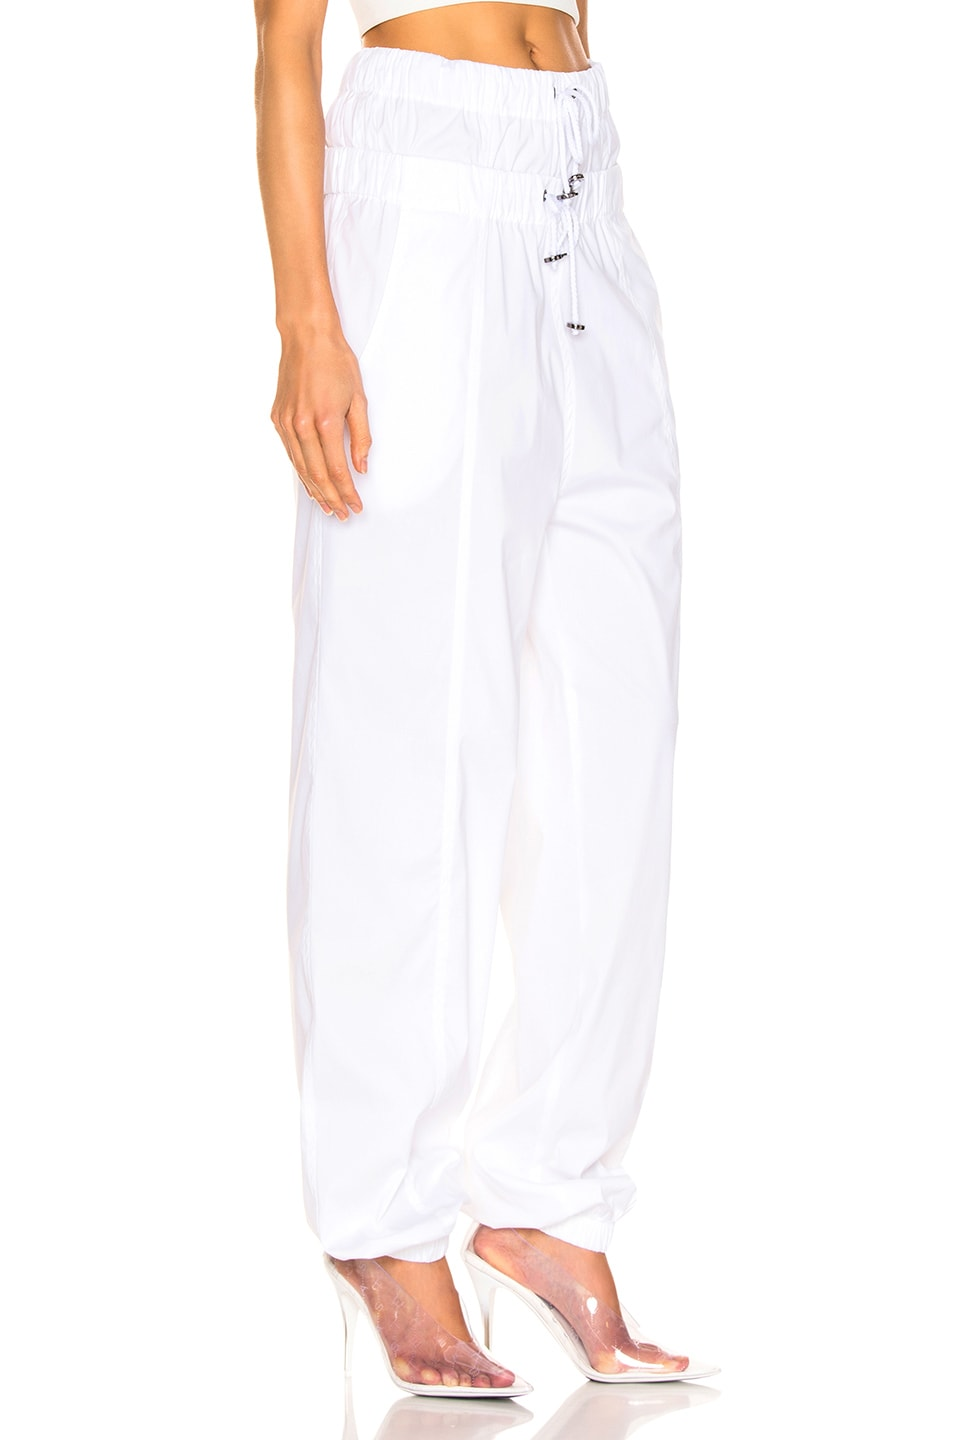 Image 2 of TRE by Natalie Ratabesi Flo Track Pant in White